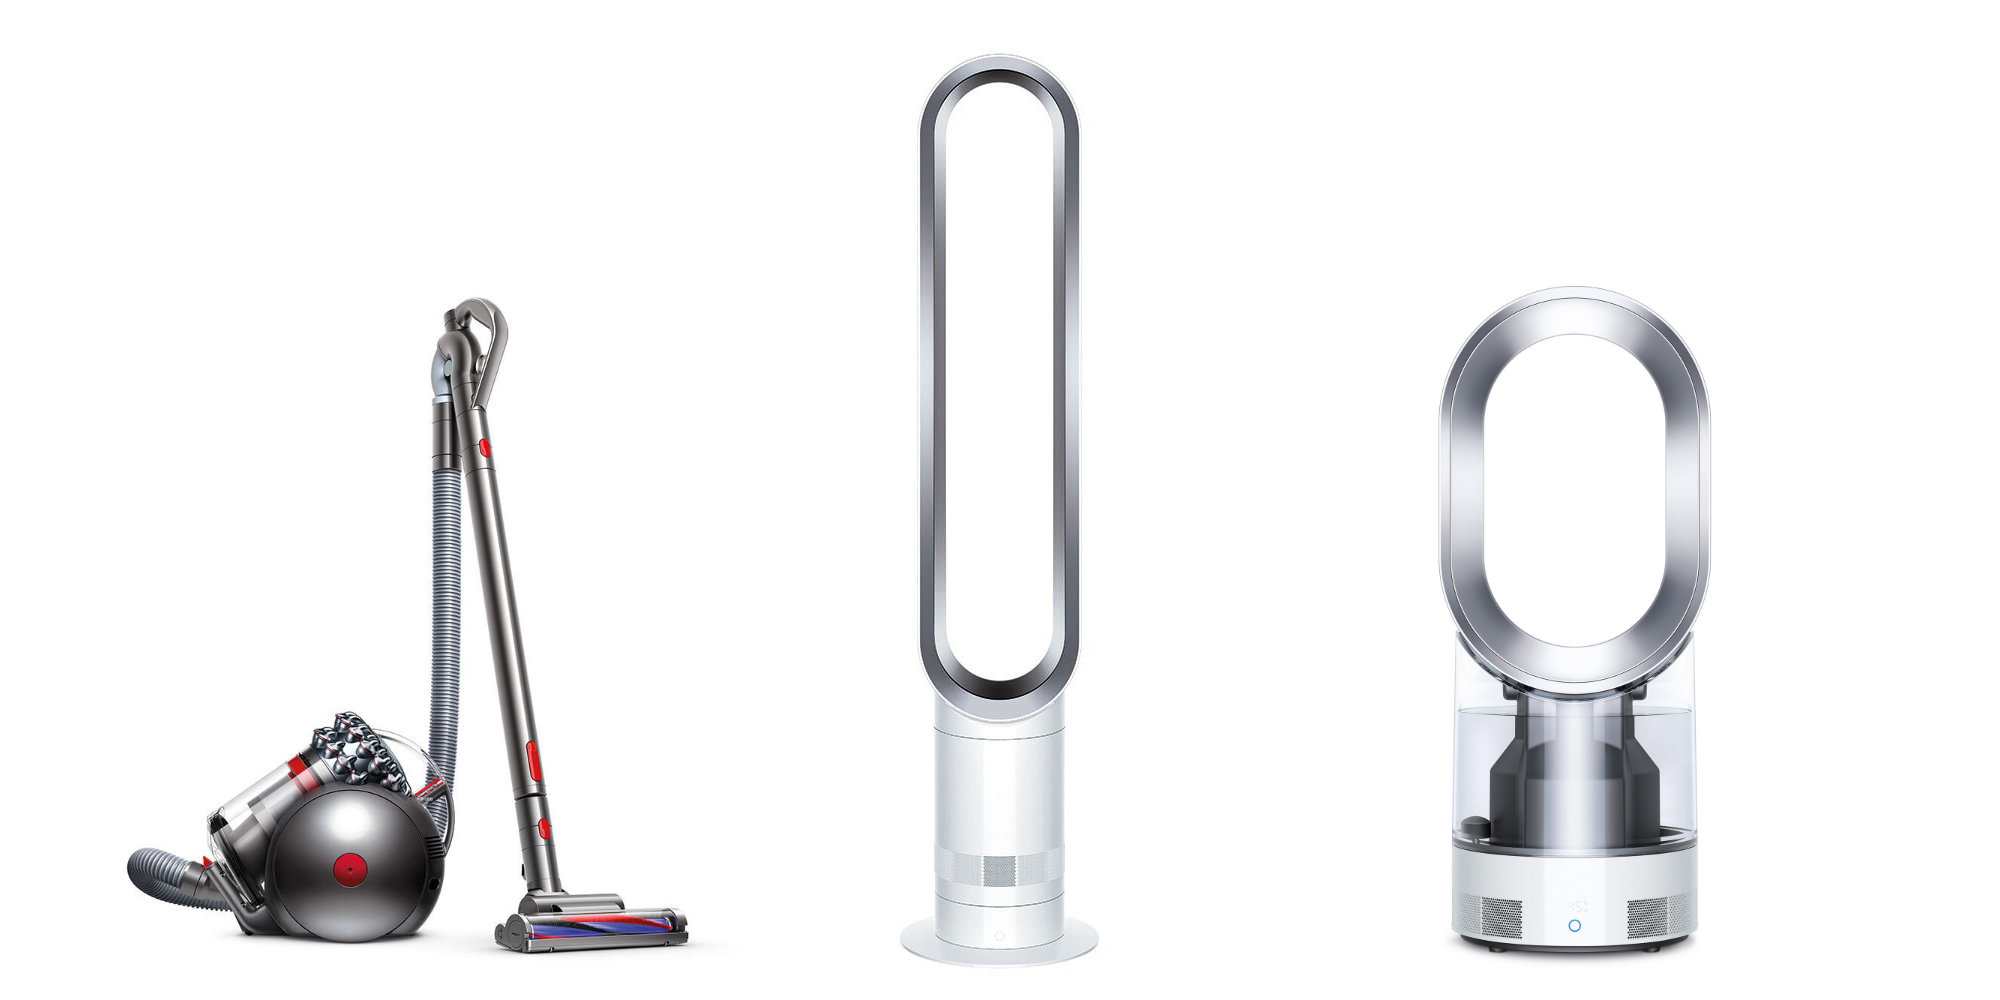 Various refurb Dyson fans and vacuums see new all-time lows, priced from just $88